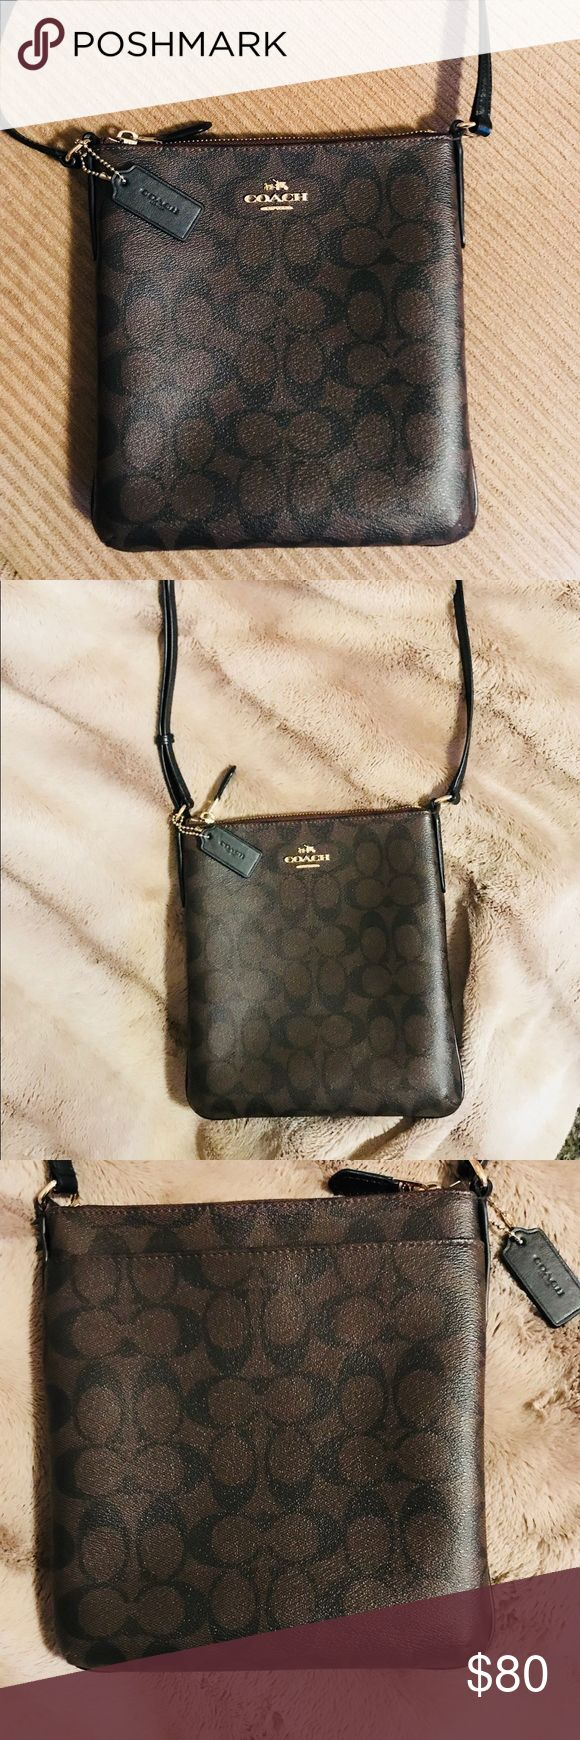 """Coach signature crossbody purse Brown with signature CC in black. Coated canvas with zippered top closure and gold hardware and gold COACH name plate. One slip pocket inside. Long crossbody strap. Appx 8"""" wide, 9"""" High, .75"""" deep. Used twice. No sign of wear, looks brand new!! Coach Bags Crossbody Bags"""